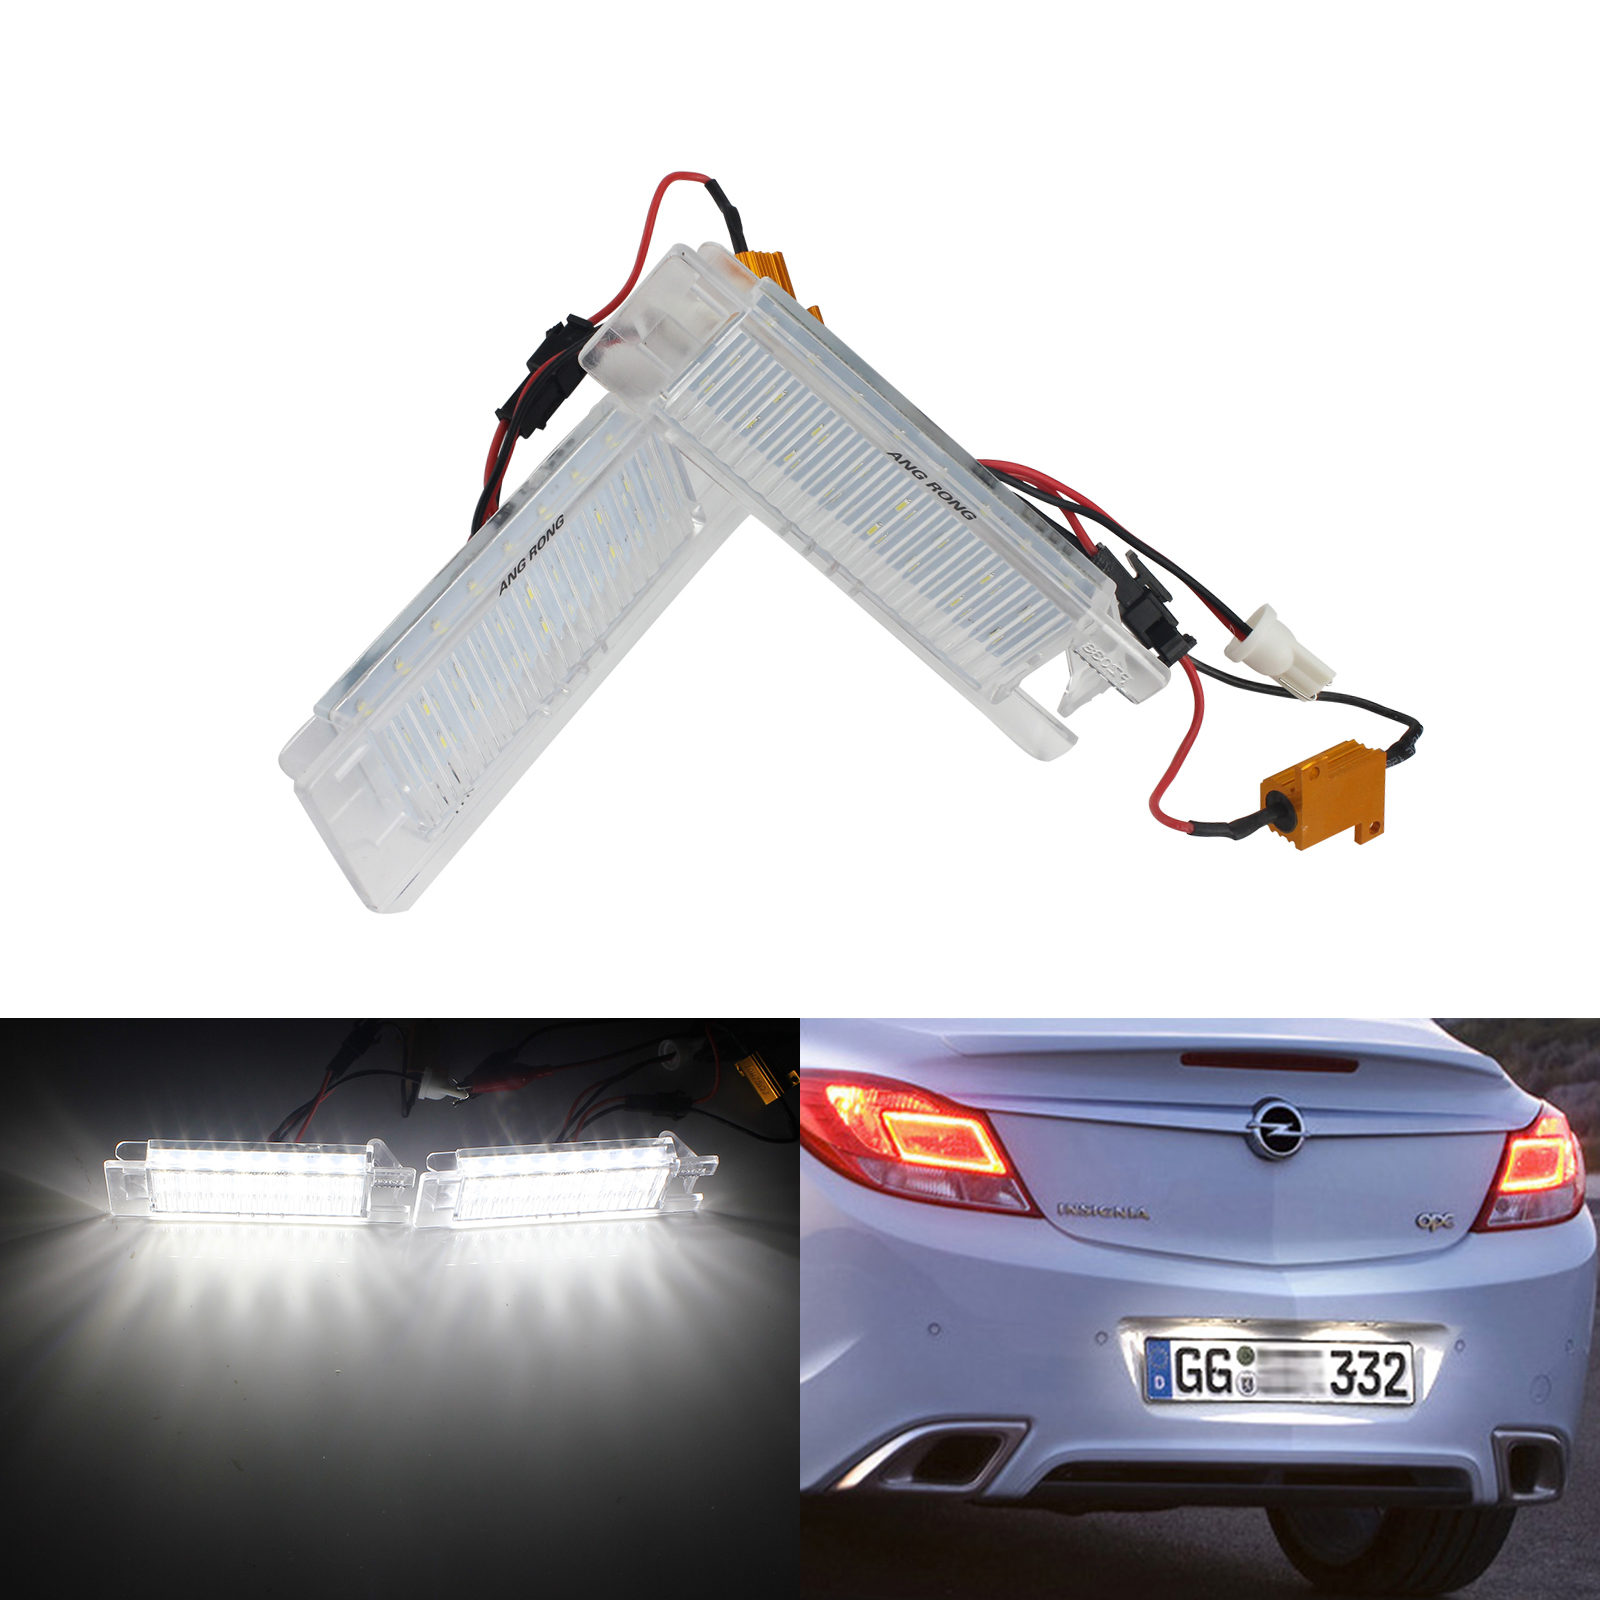 2x LED LICENSE NUMBER PLATE LIGHT OPEL VAUXHALL ZAFIRA TOURER C  CANBUS